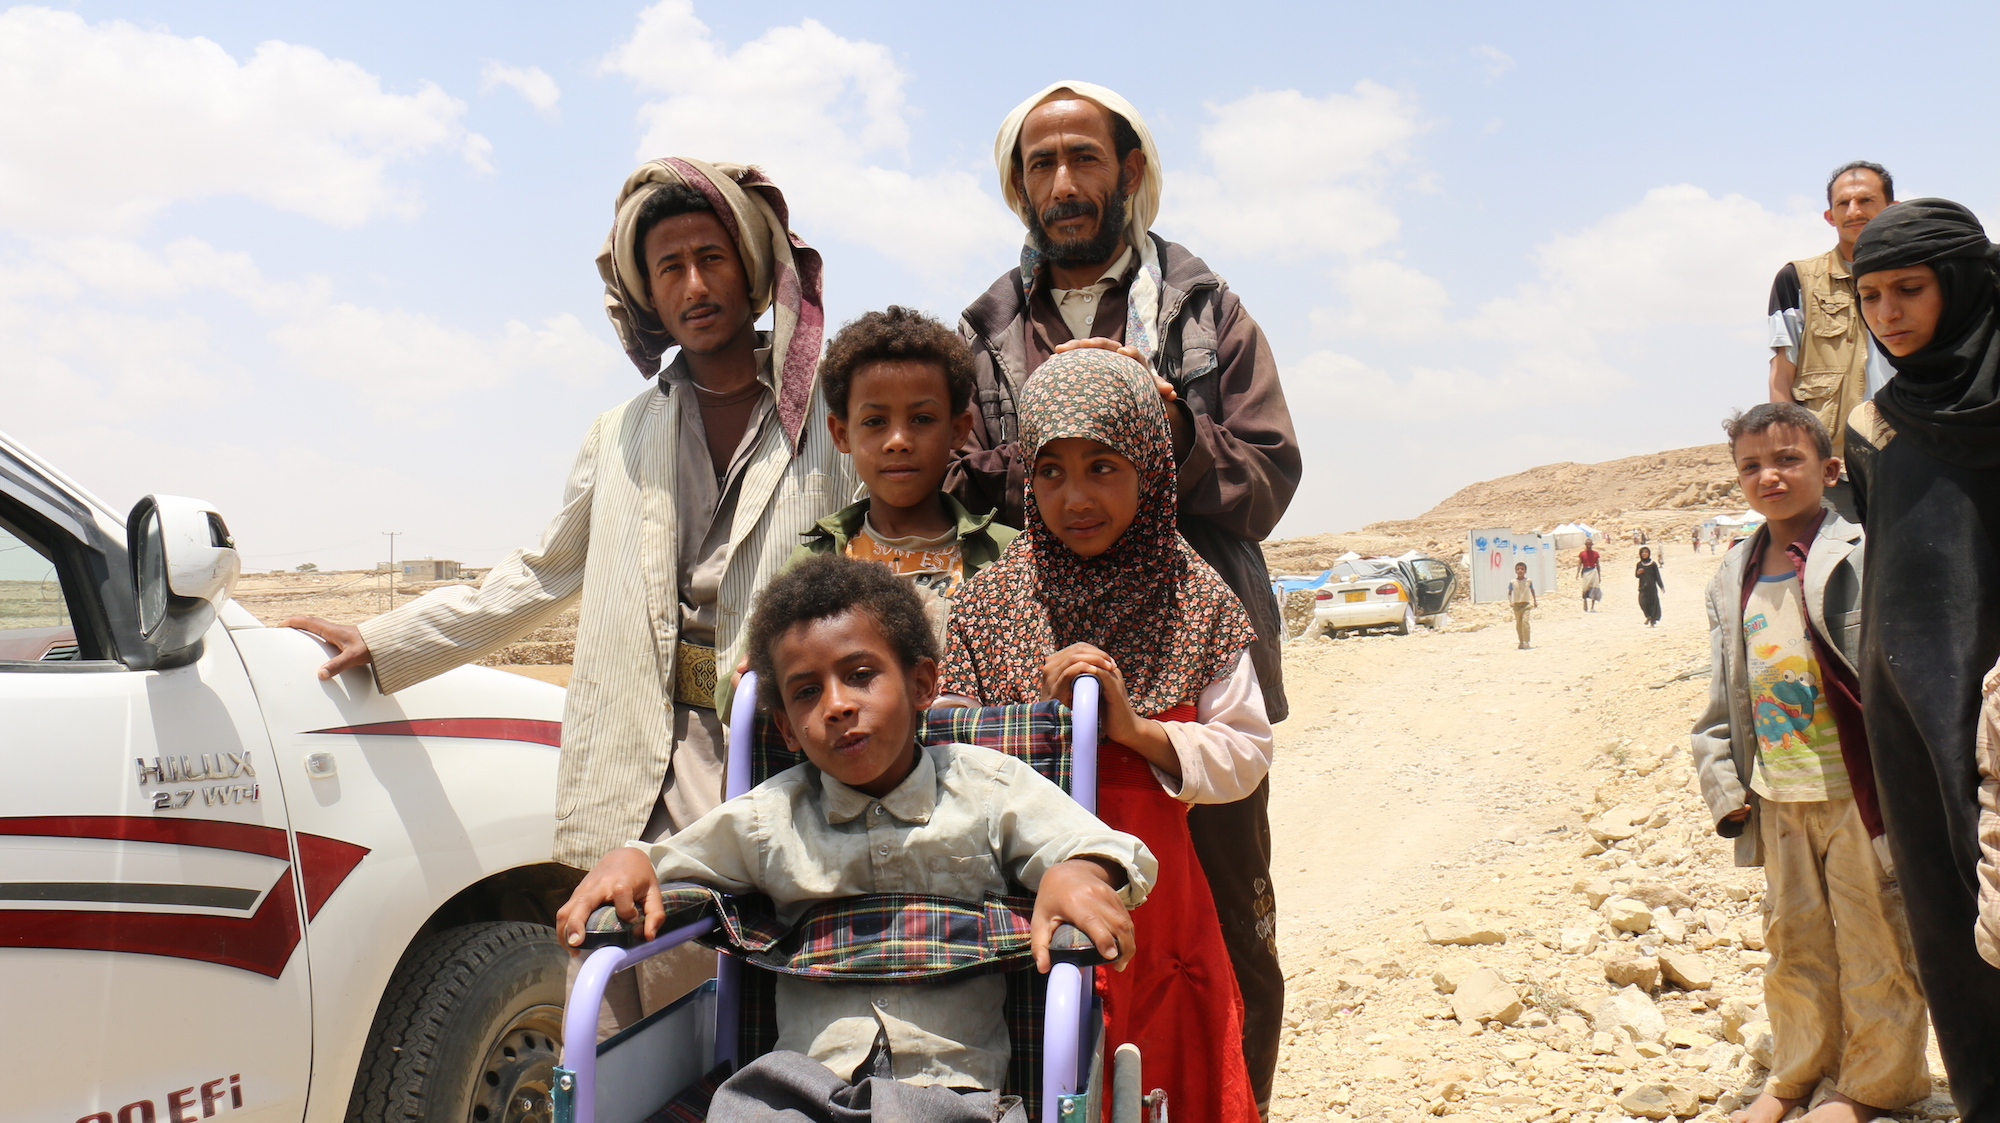 Saudi Arabia-led coalition continue to indiscriminately bomb and kill civilians in Yemen.